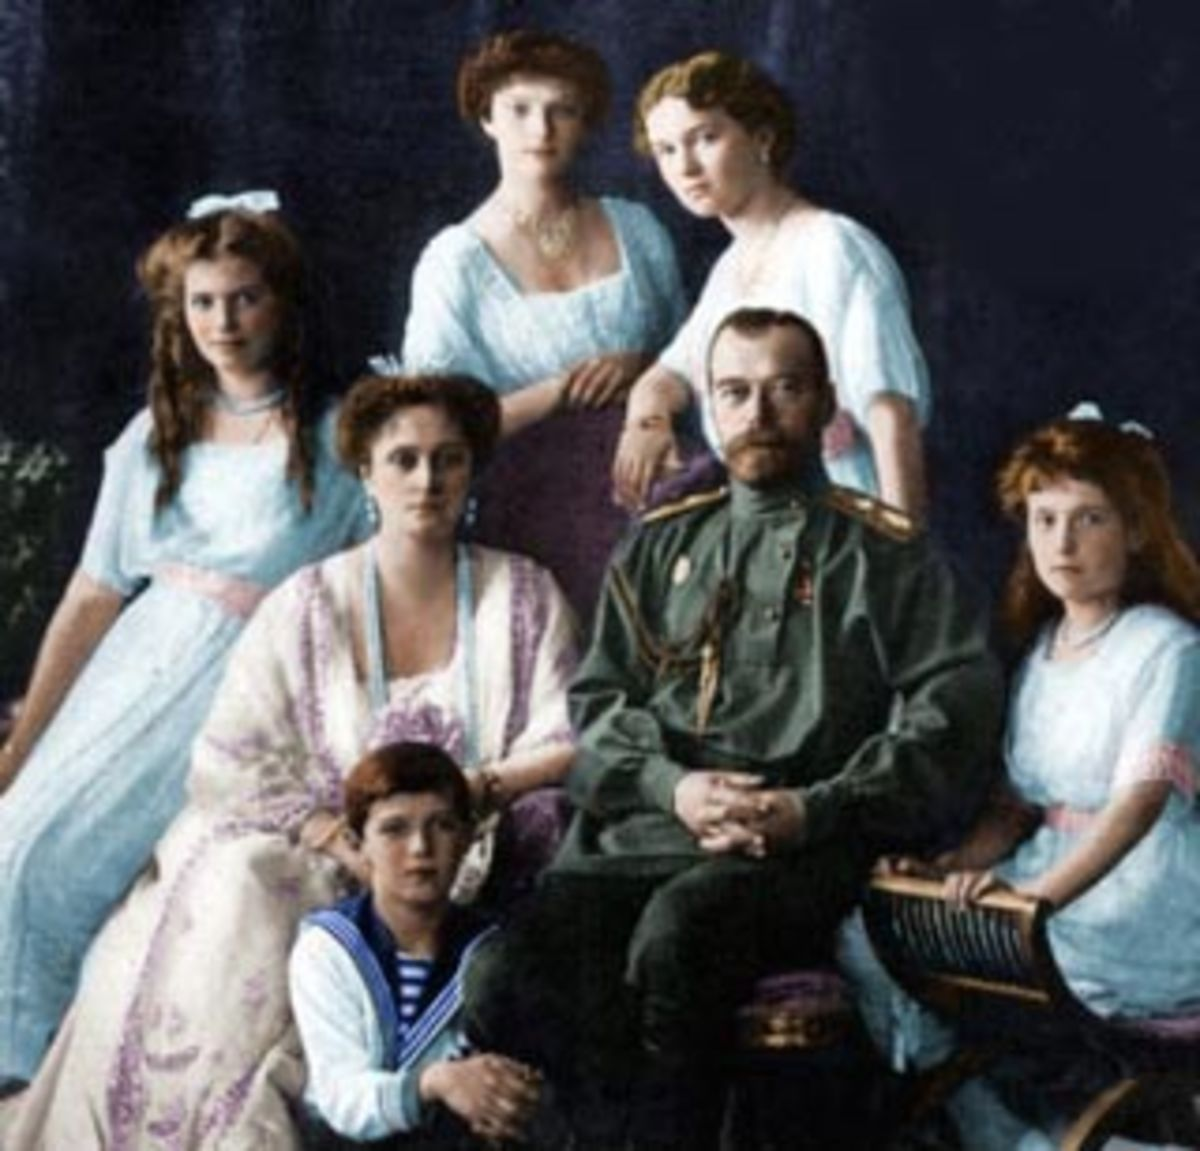 Tsar Nikolai, Tsarina Alexandra and their children Olga, Tatiana, Maria, Anastasia and Alexei